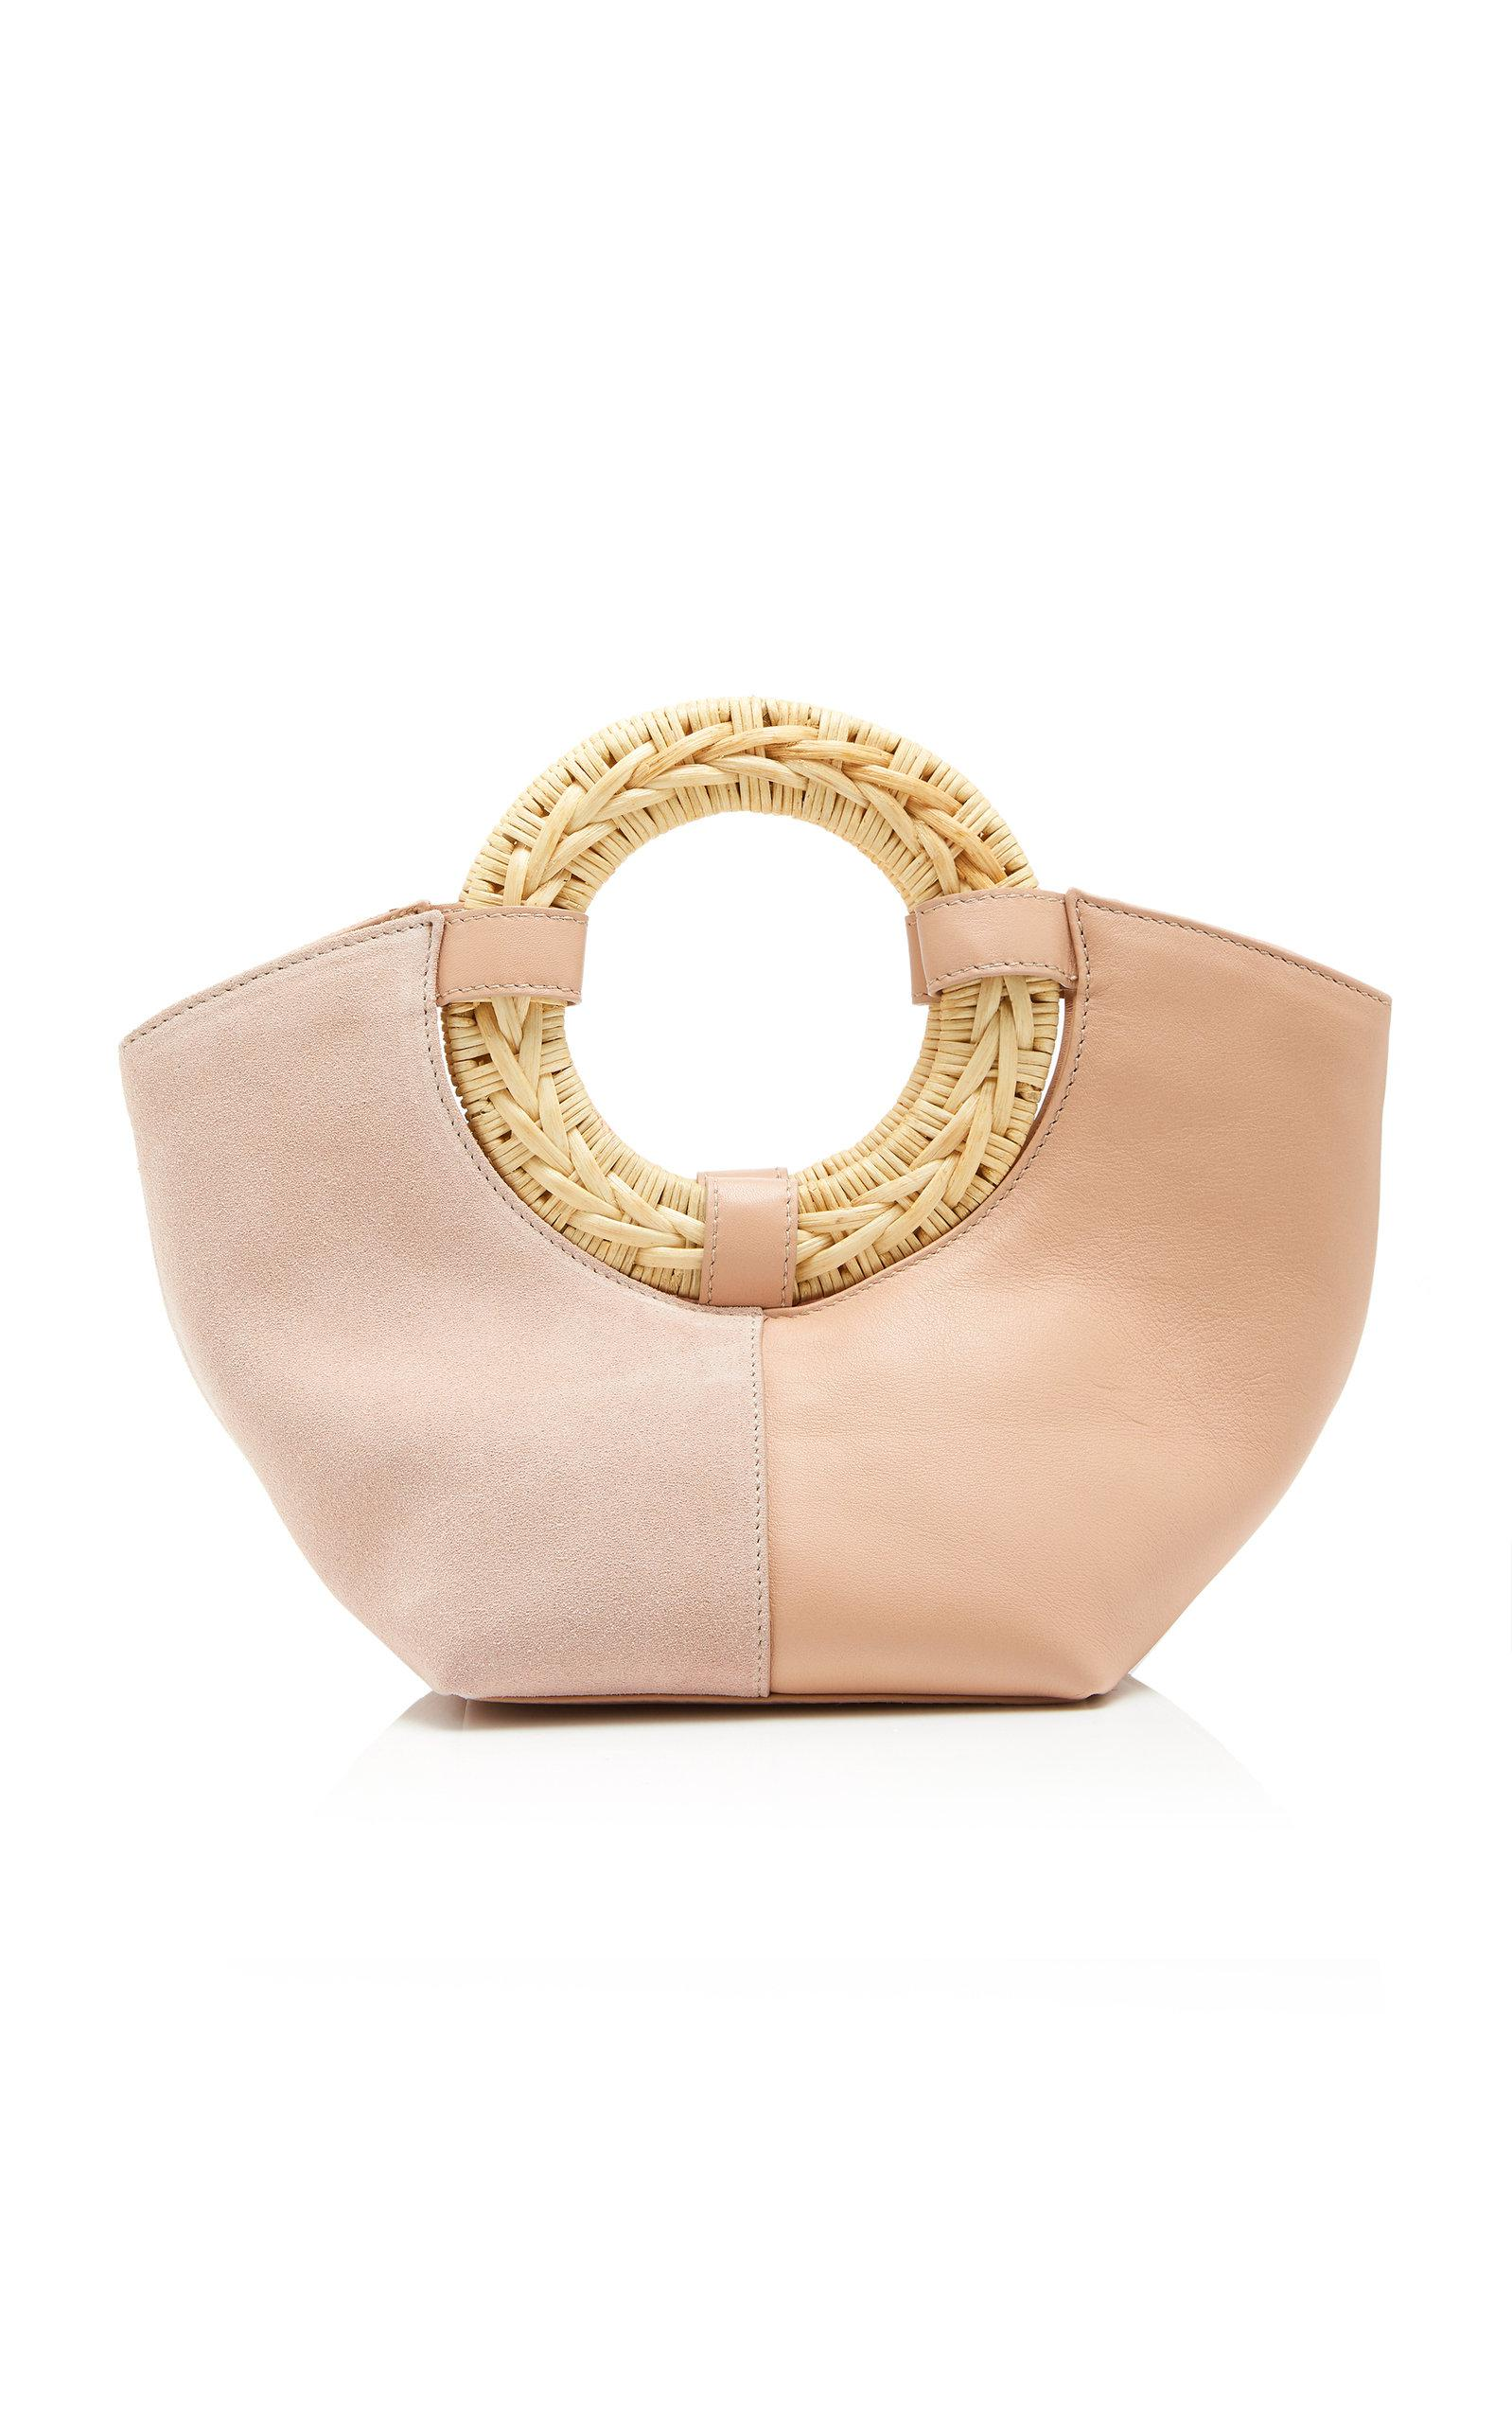 6a8cf0c55b8 Lyst - Ulla Johnson Axis Mini Leather Tote in Pink